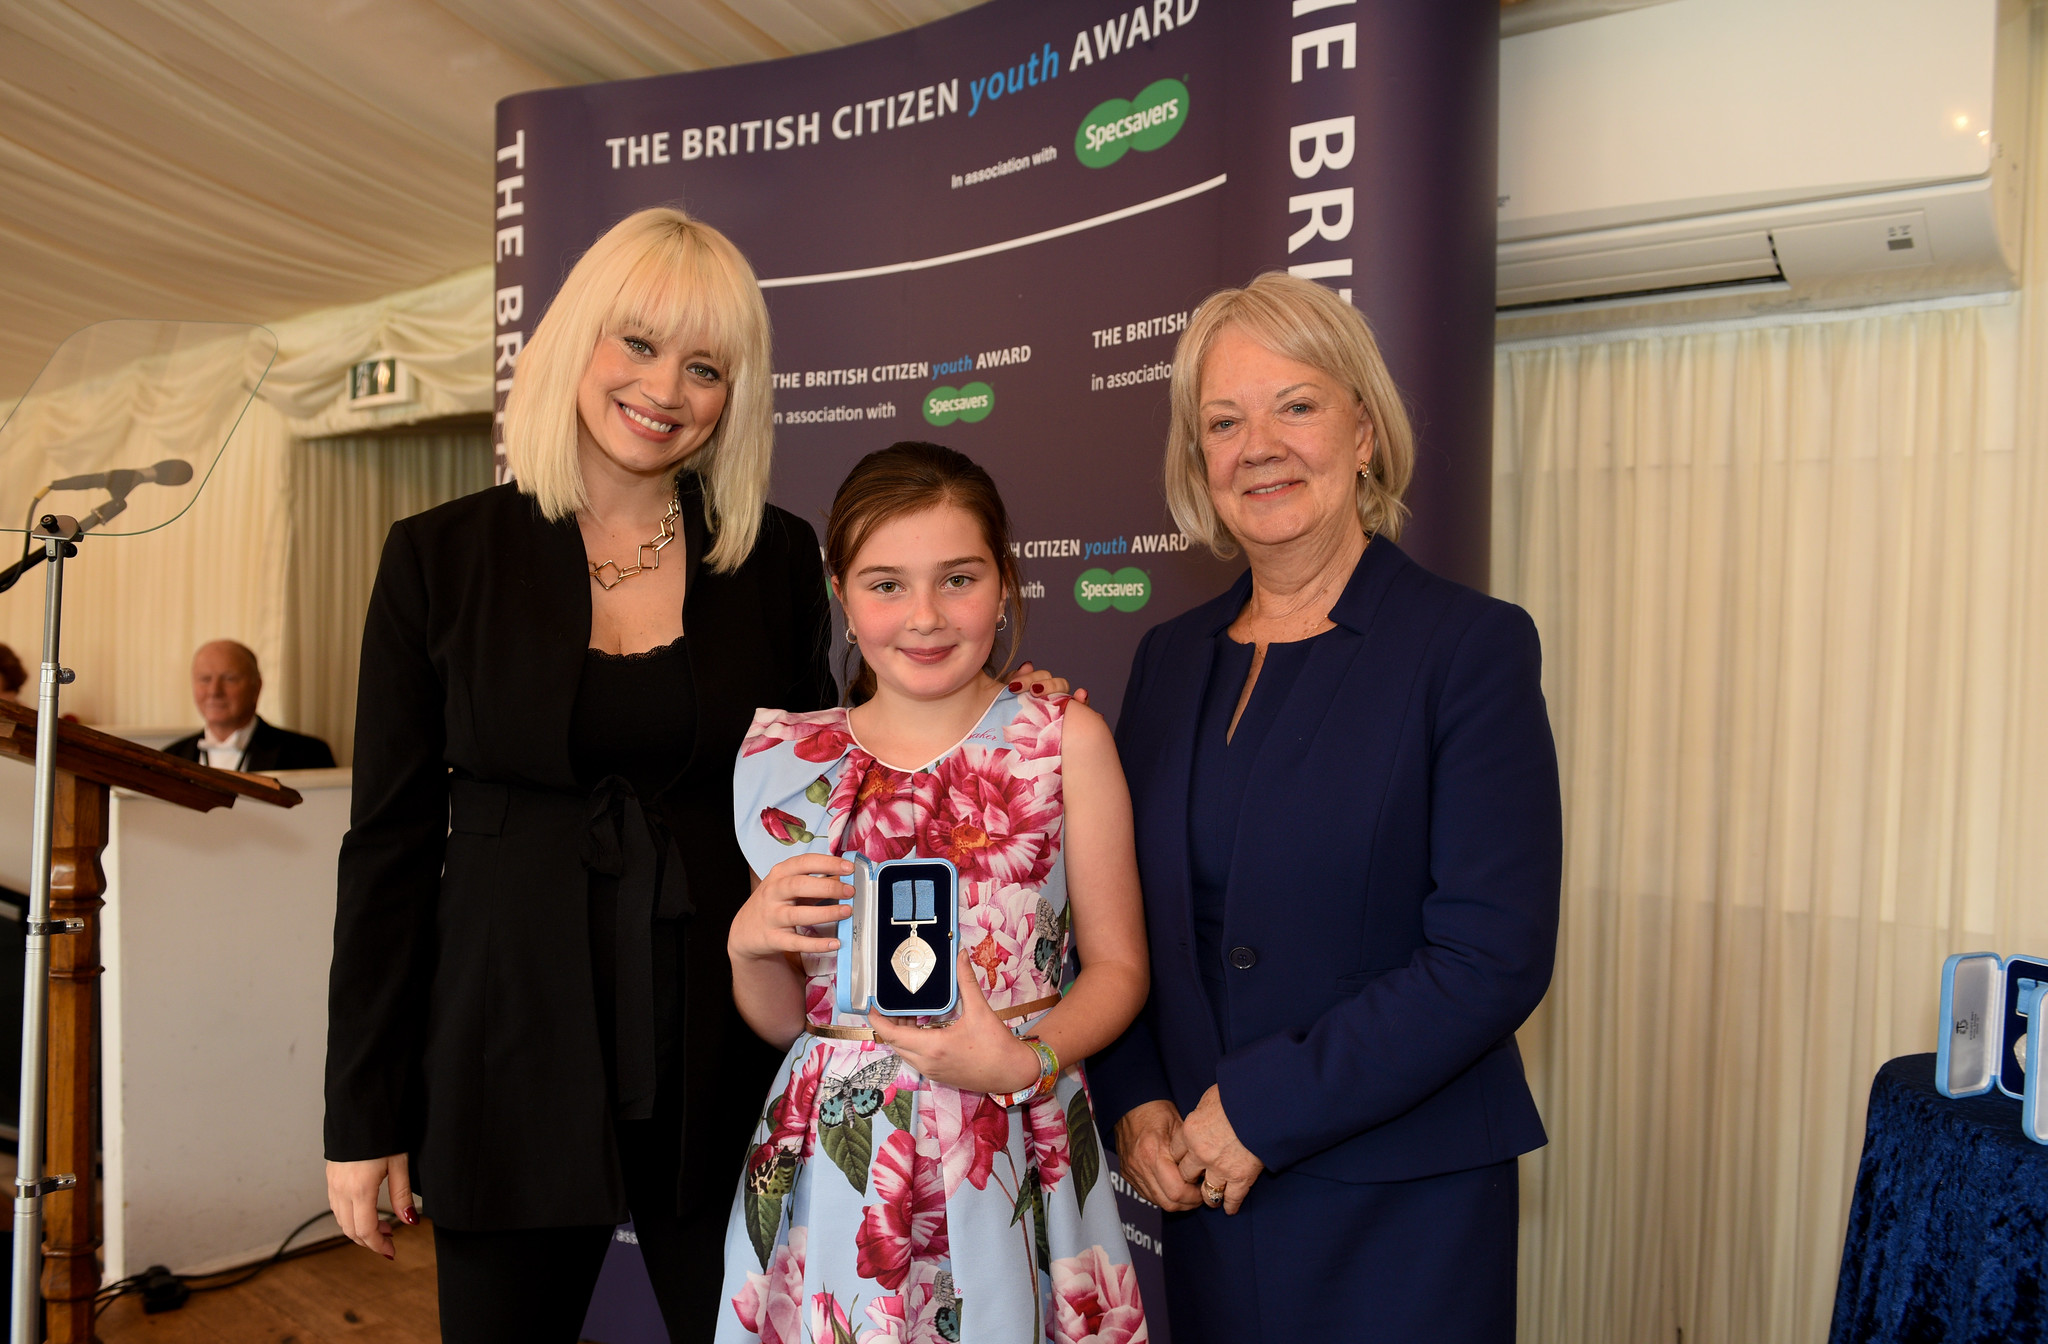 Kimberly Wyatt, Chloe Blanchfield BCyA, Dame Mary Perkins, Co-Founder, Specsavers